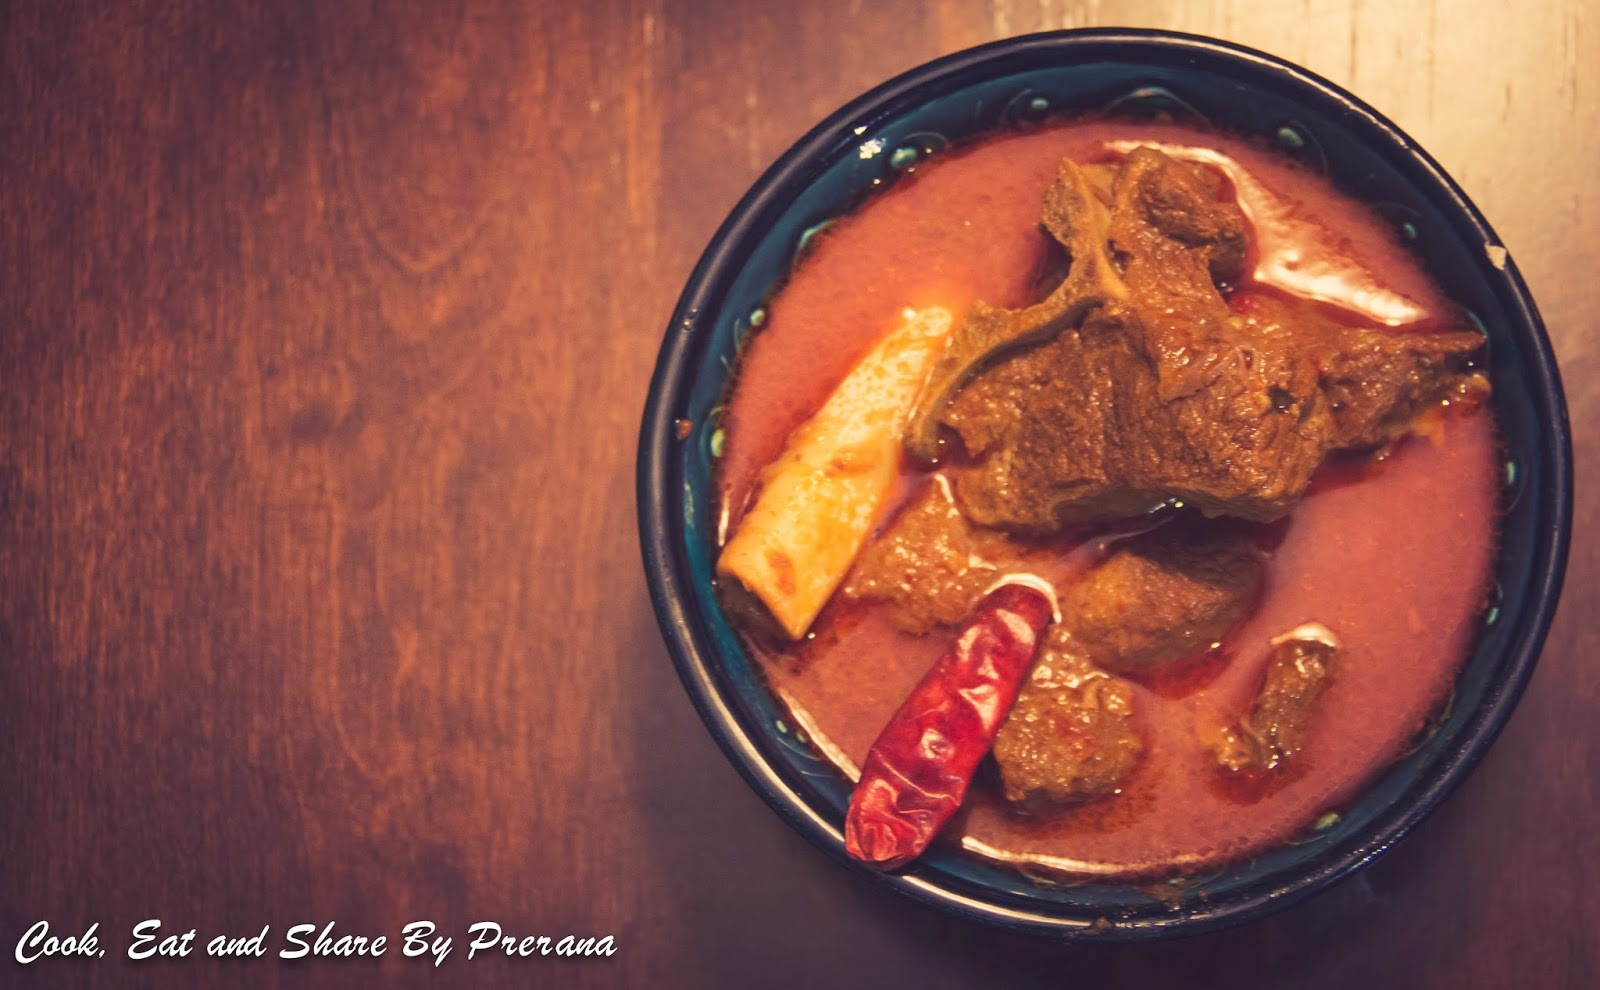 Rajesthani Laal Maas / Laal Maas / Mutton in Hot red chili Sauce